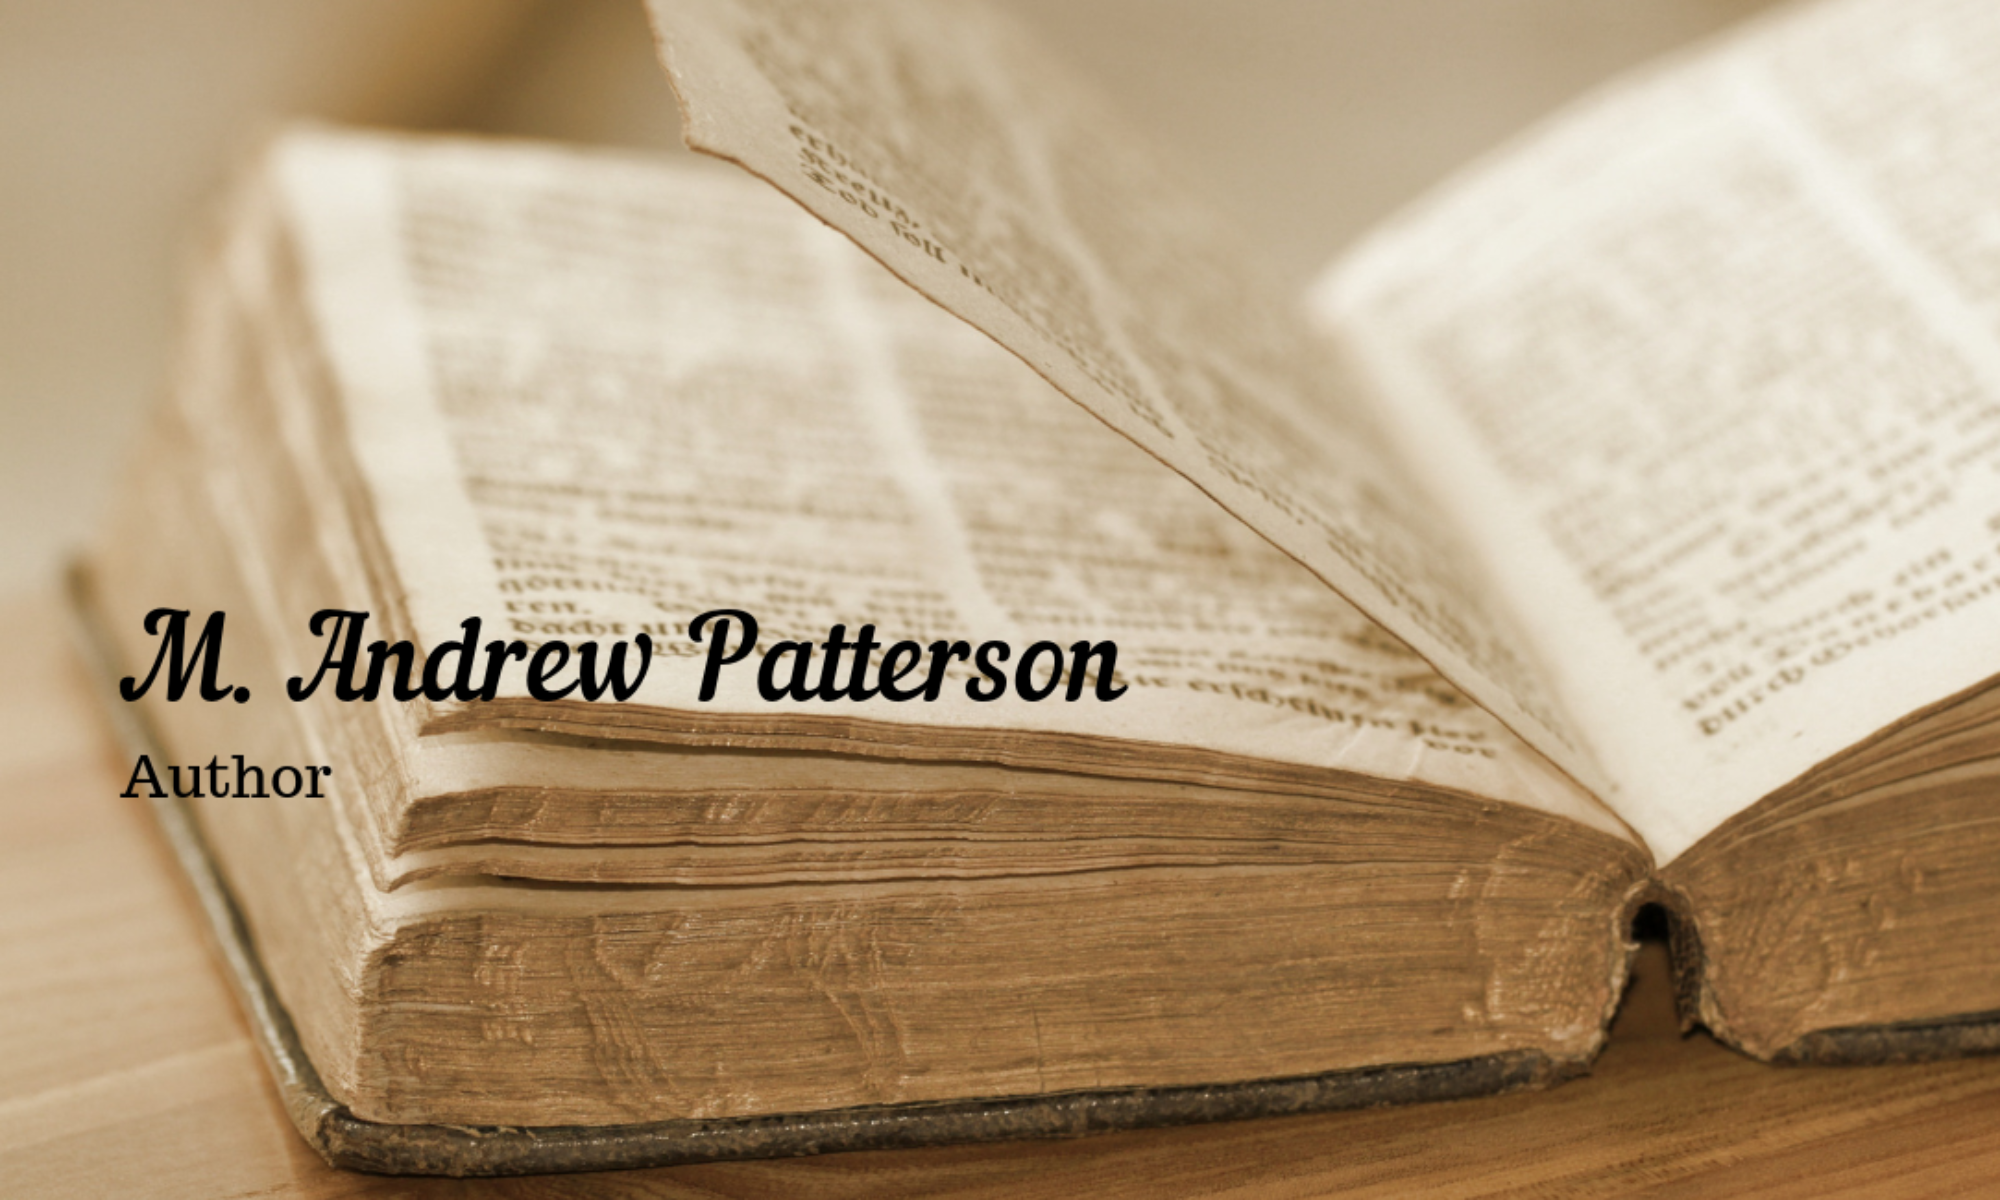 M. Andrew Patterson